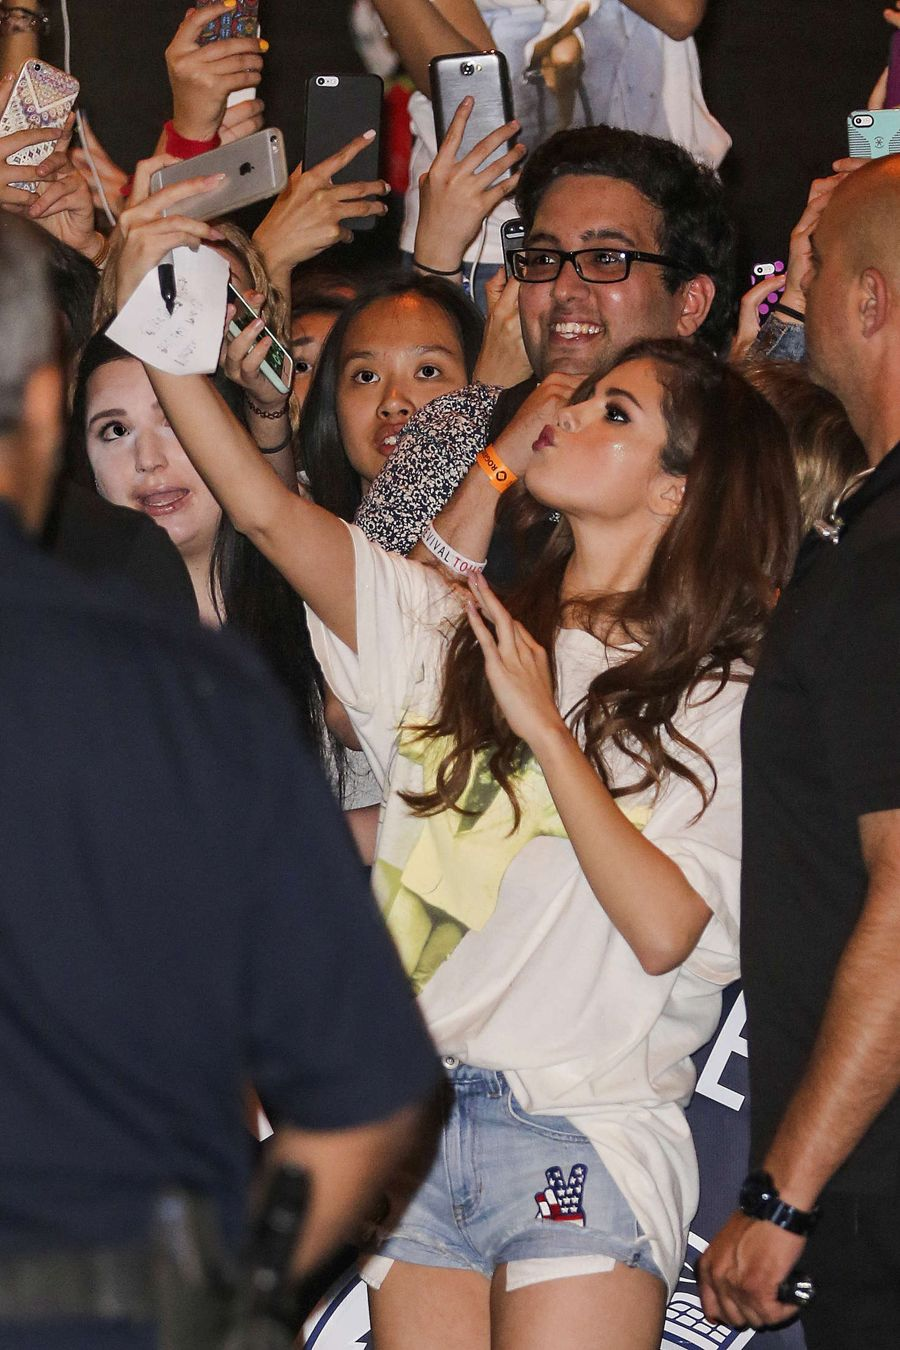 Selena Gomez with her fans in Vancouver